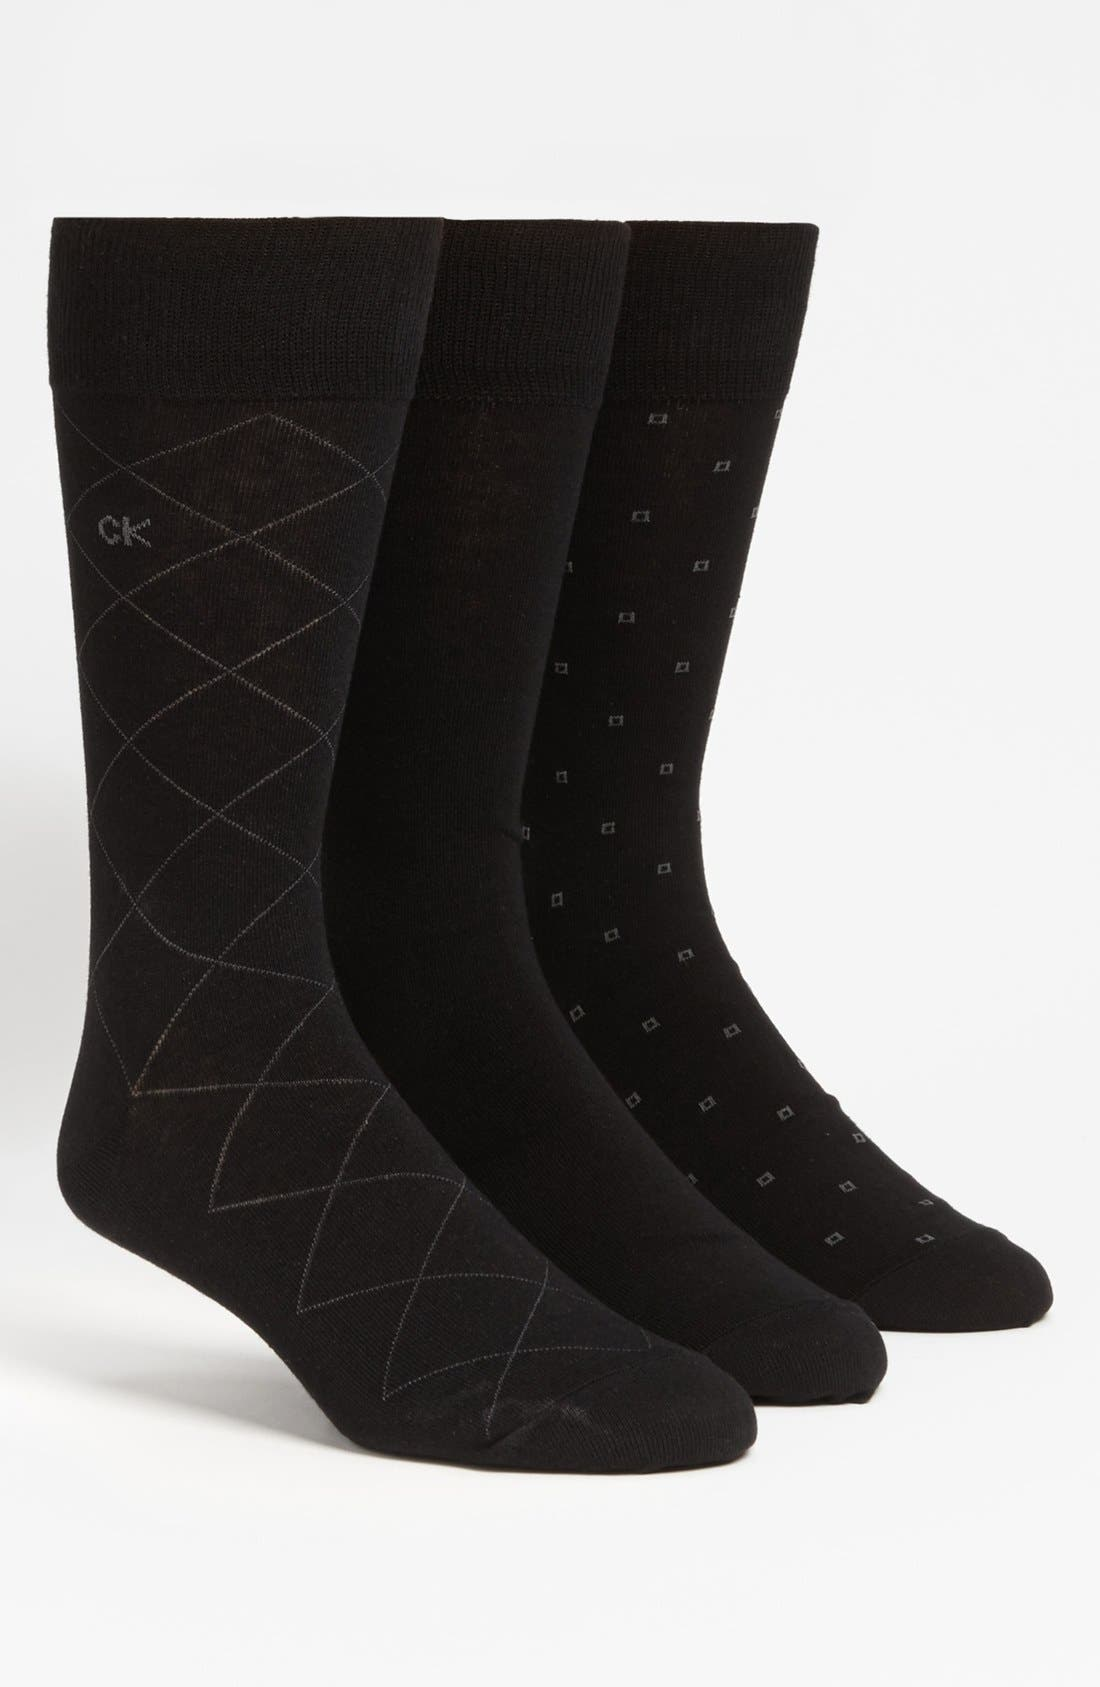 3-Pack Patterned Socks,                             Main thumbnail 1, color,                             BLACK